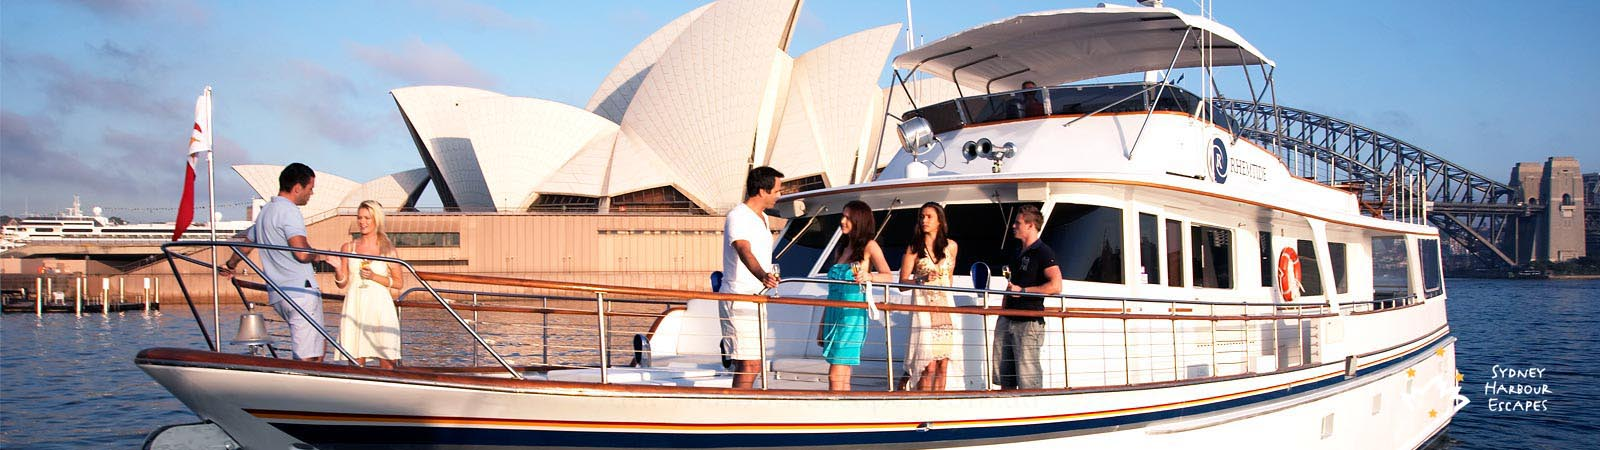 Private charter boat hire Sydney